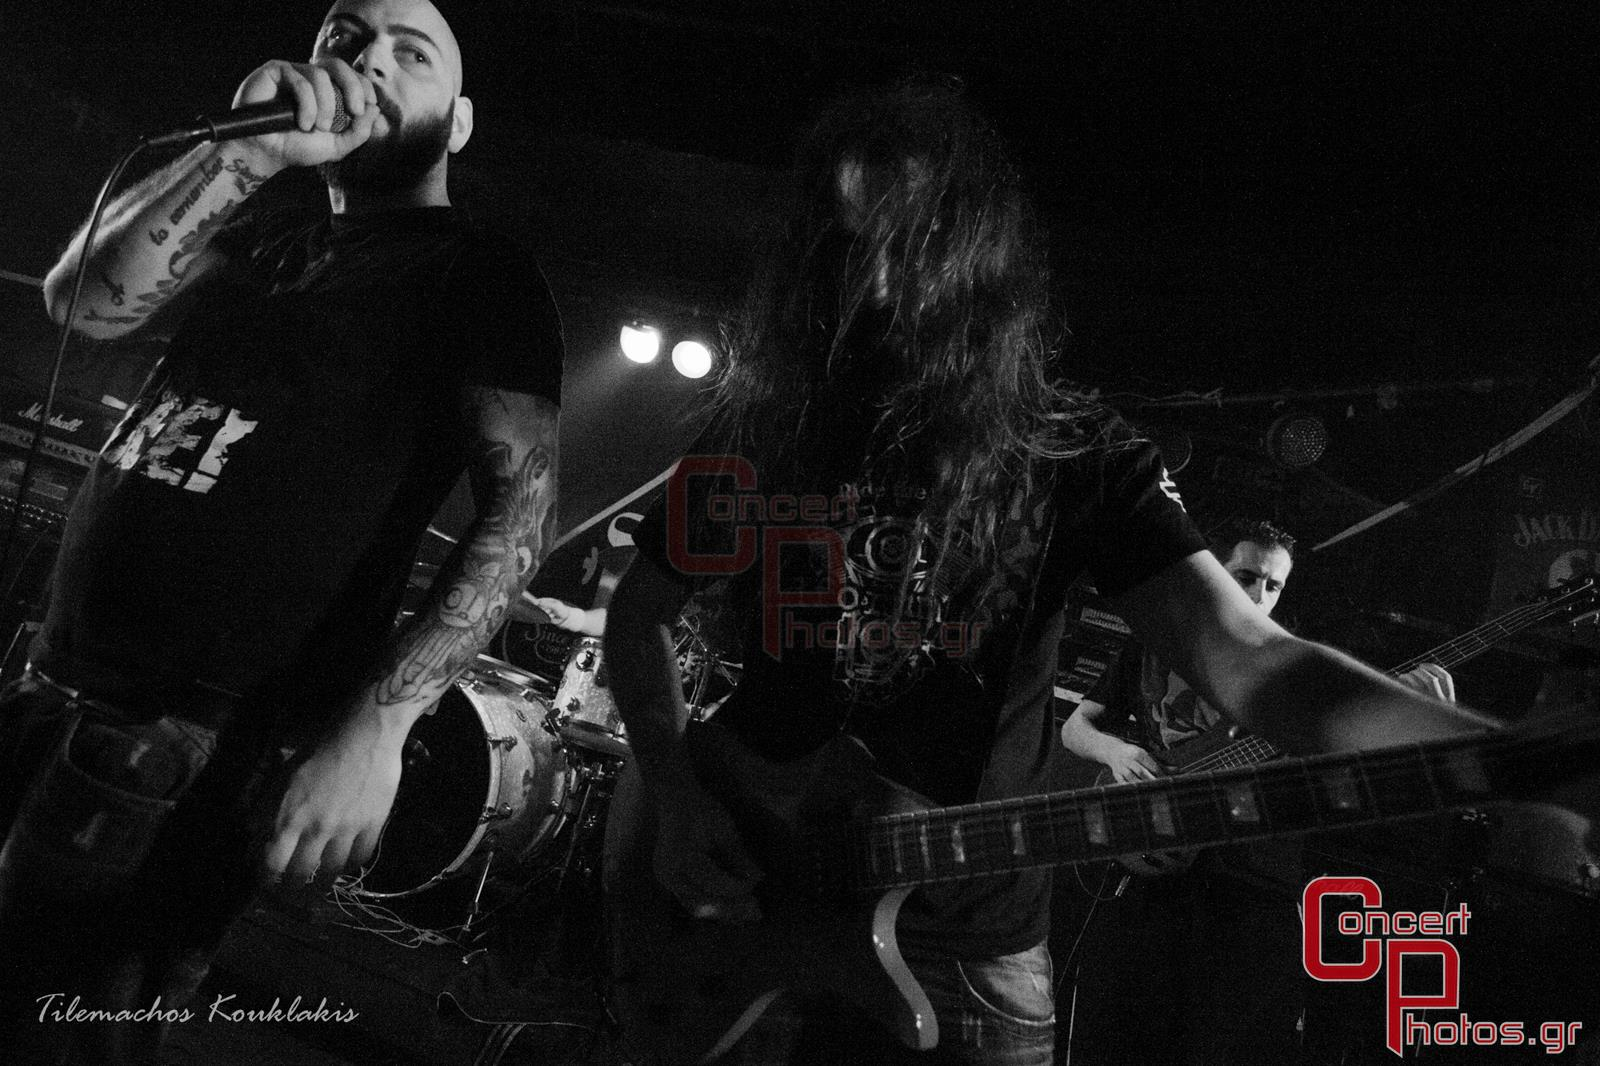 Nightstalker-Nightstalker AN Club photographer:  - concertphotos_-11